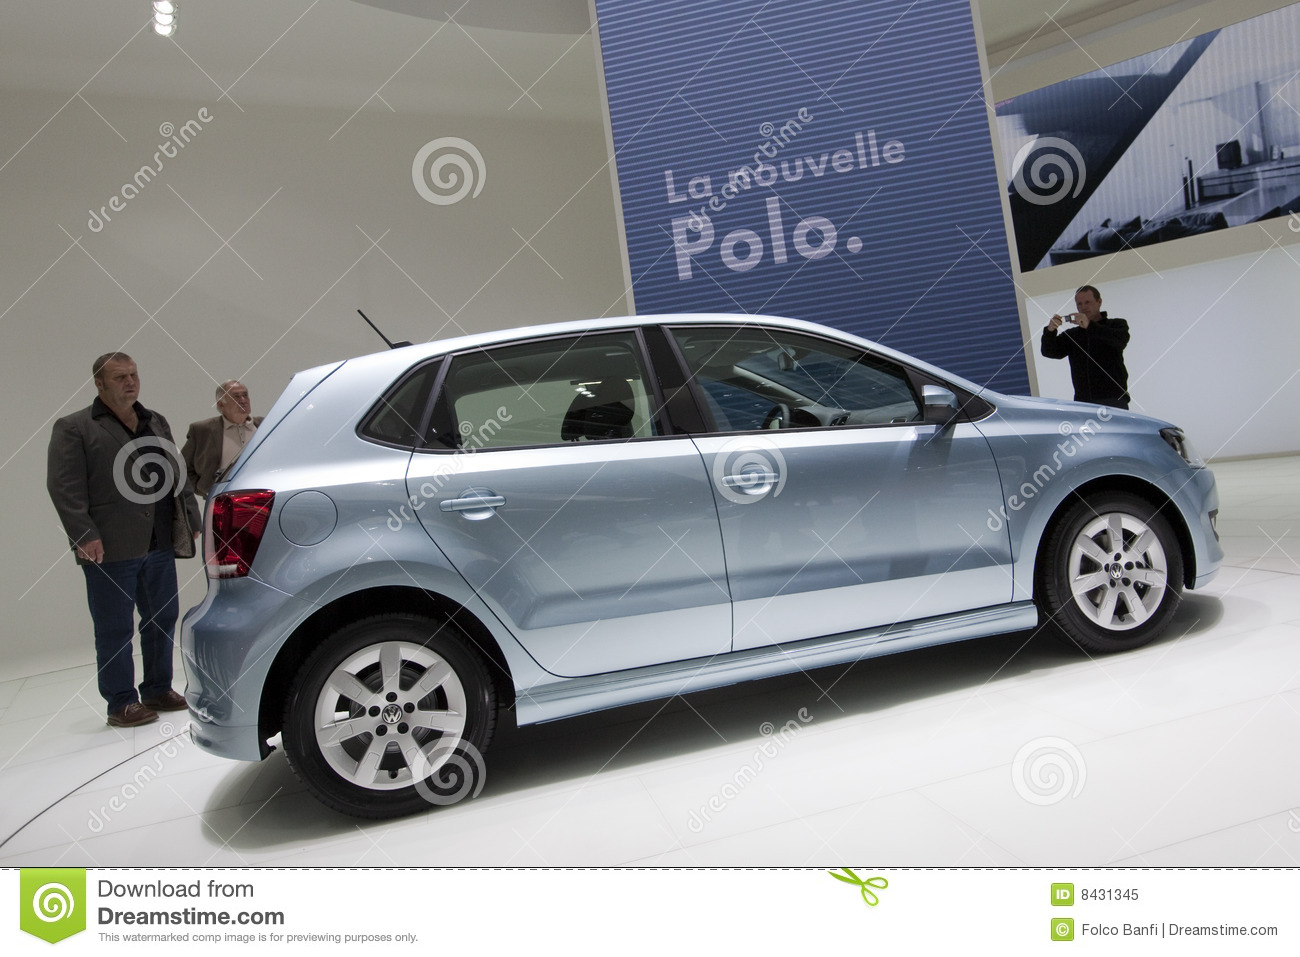 Bluemotiongeneva polo 2009 volkswagen